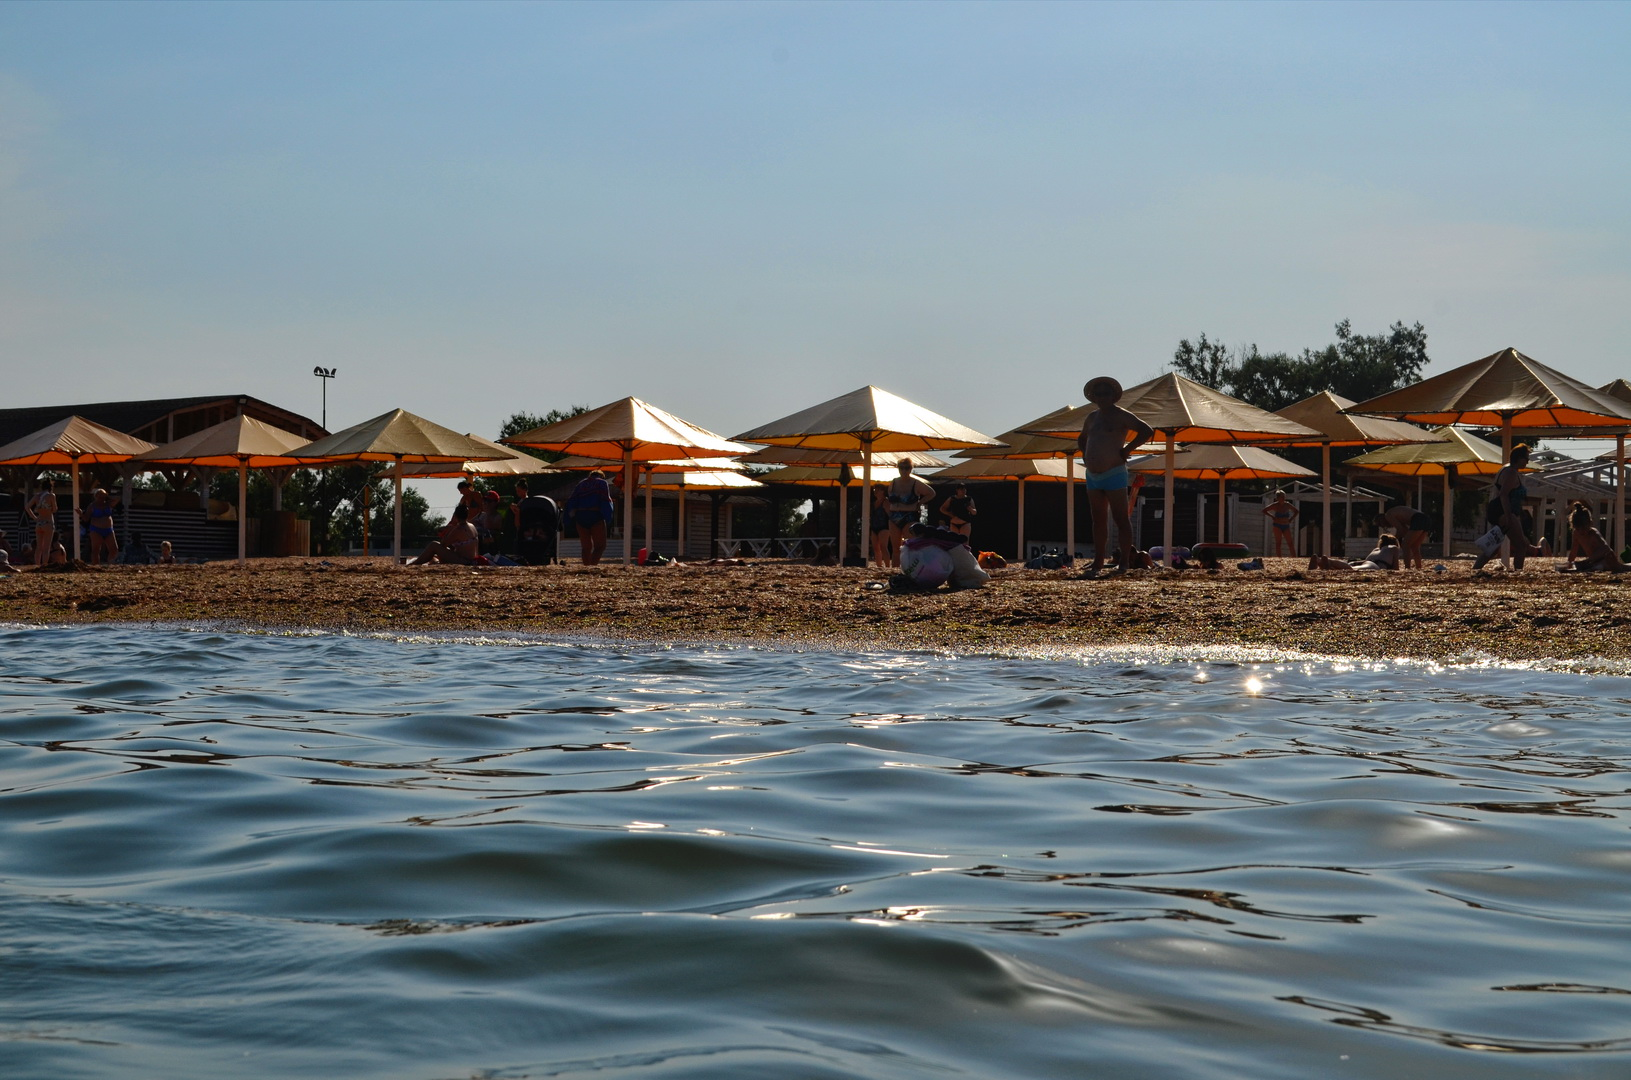 kerch city beach 22